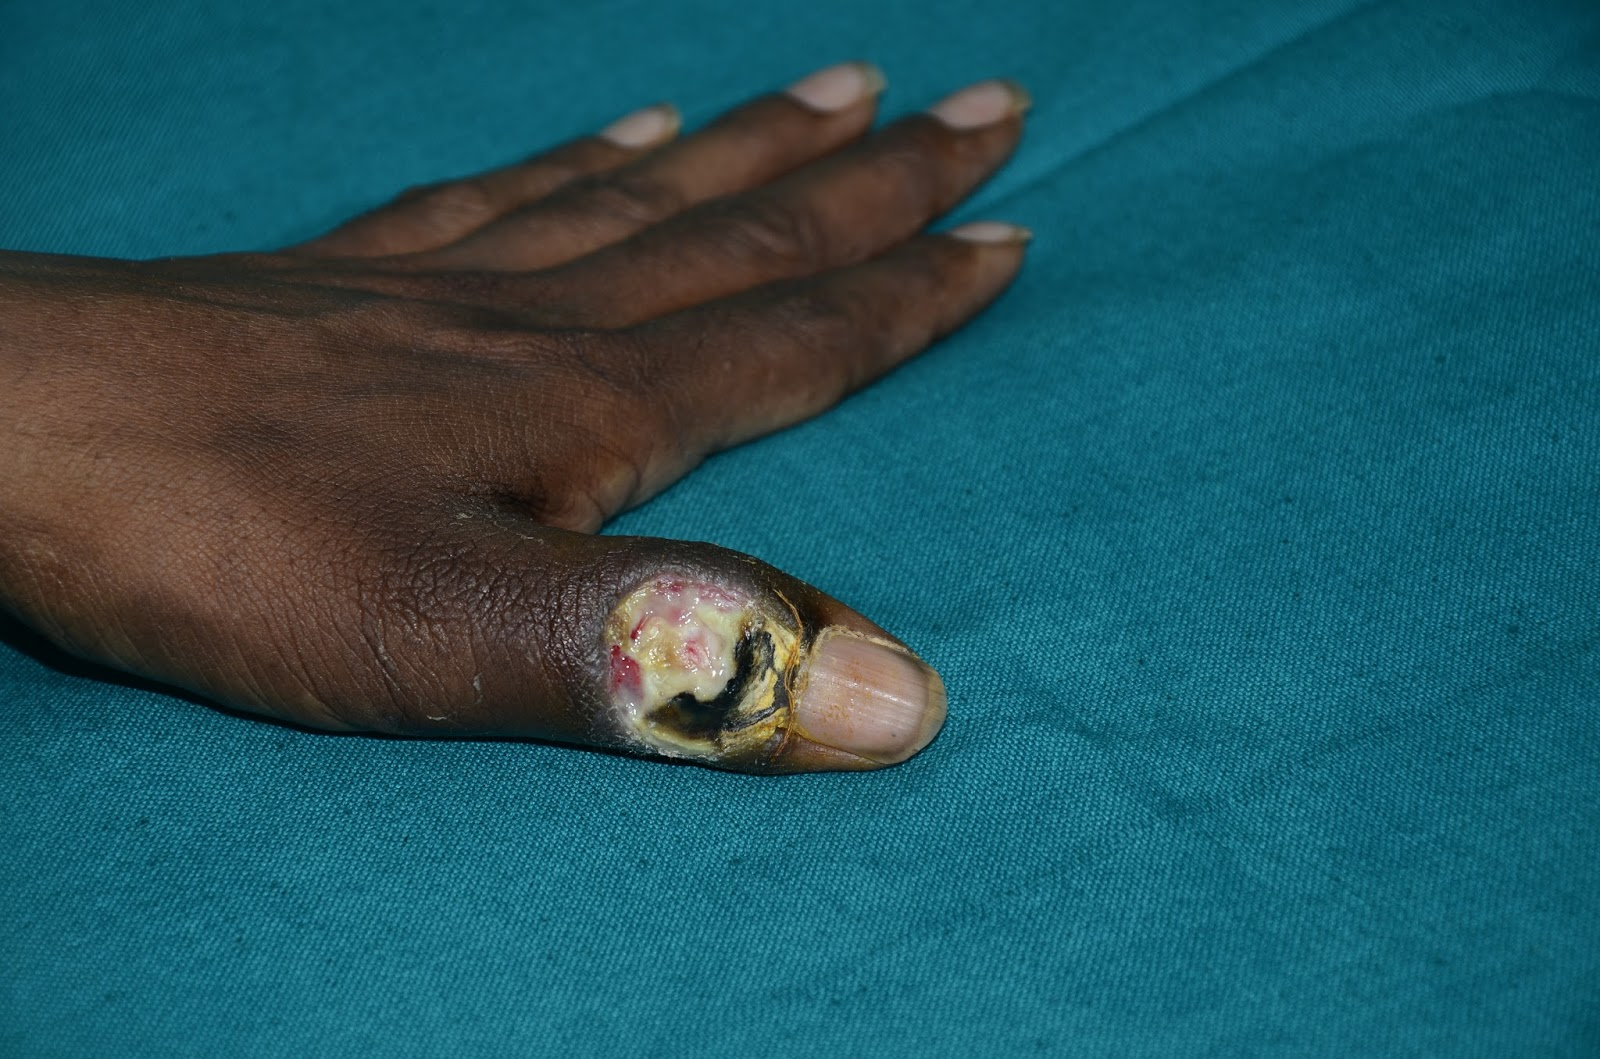 POST INFECTIVE SOFT TISSUE LOSS - EXPOSED IP JOINT THUMB - K-WIRE ...